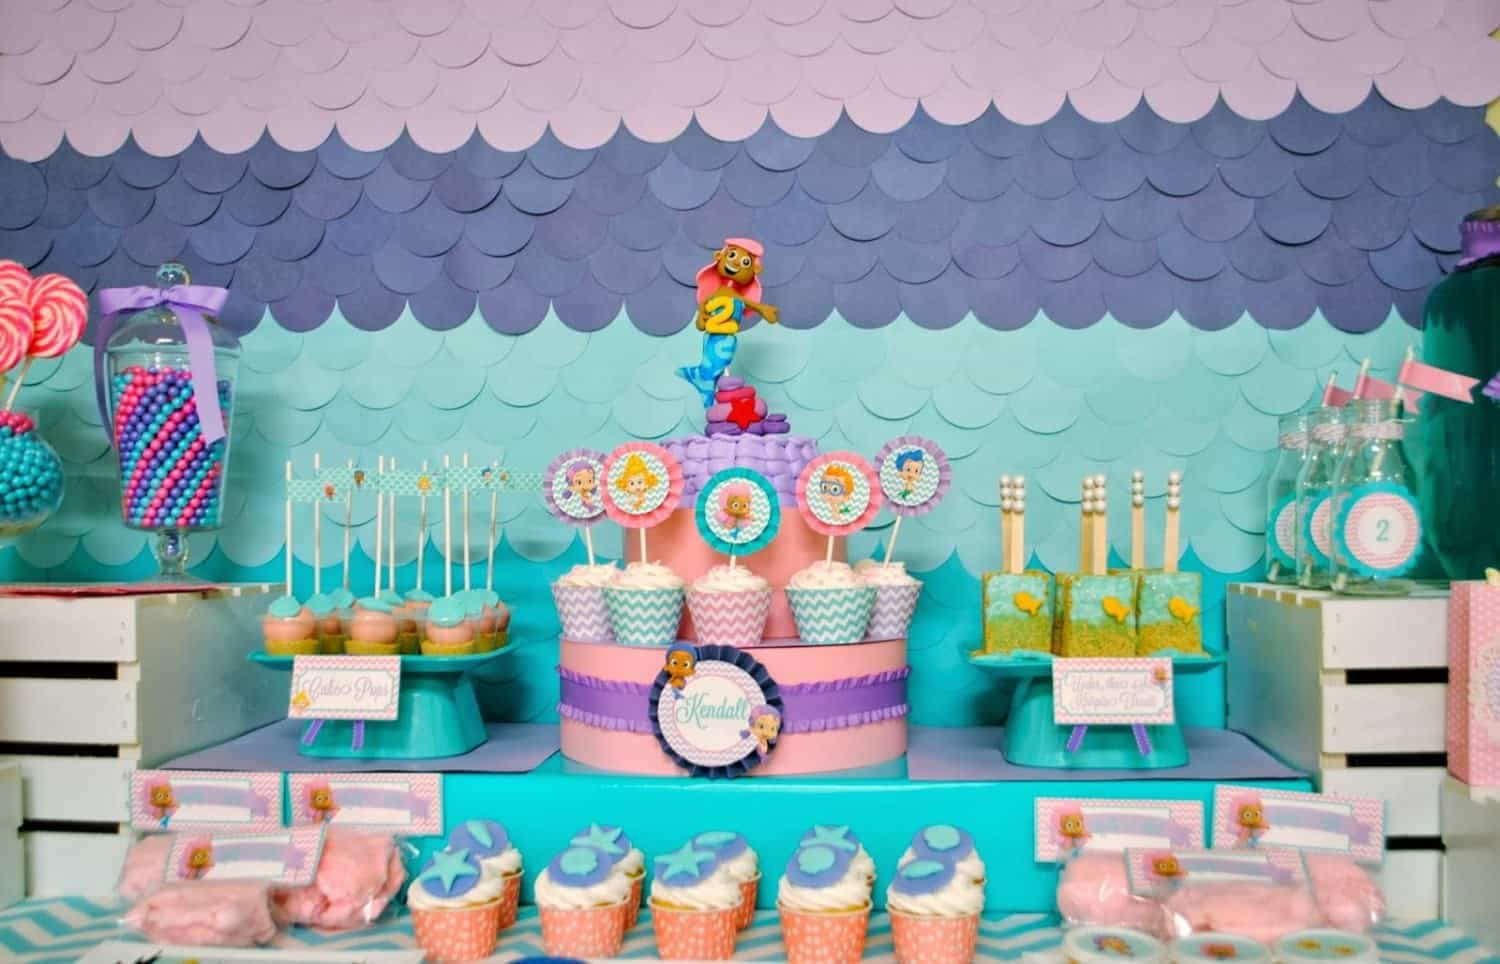 Bubble guppies party kendall 39 s under the sea bash mimi 39 s dollhouse - Bubble guppie birthday ideas ...